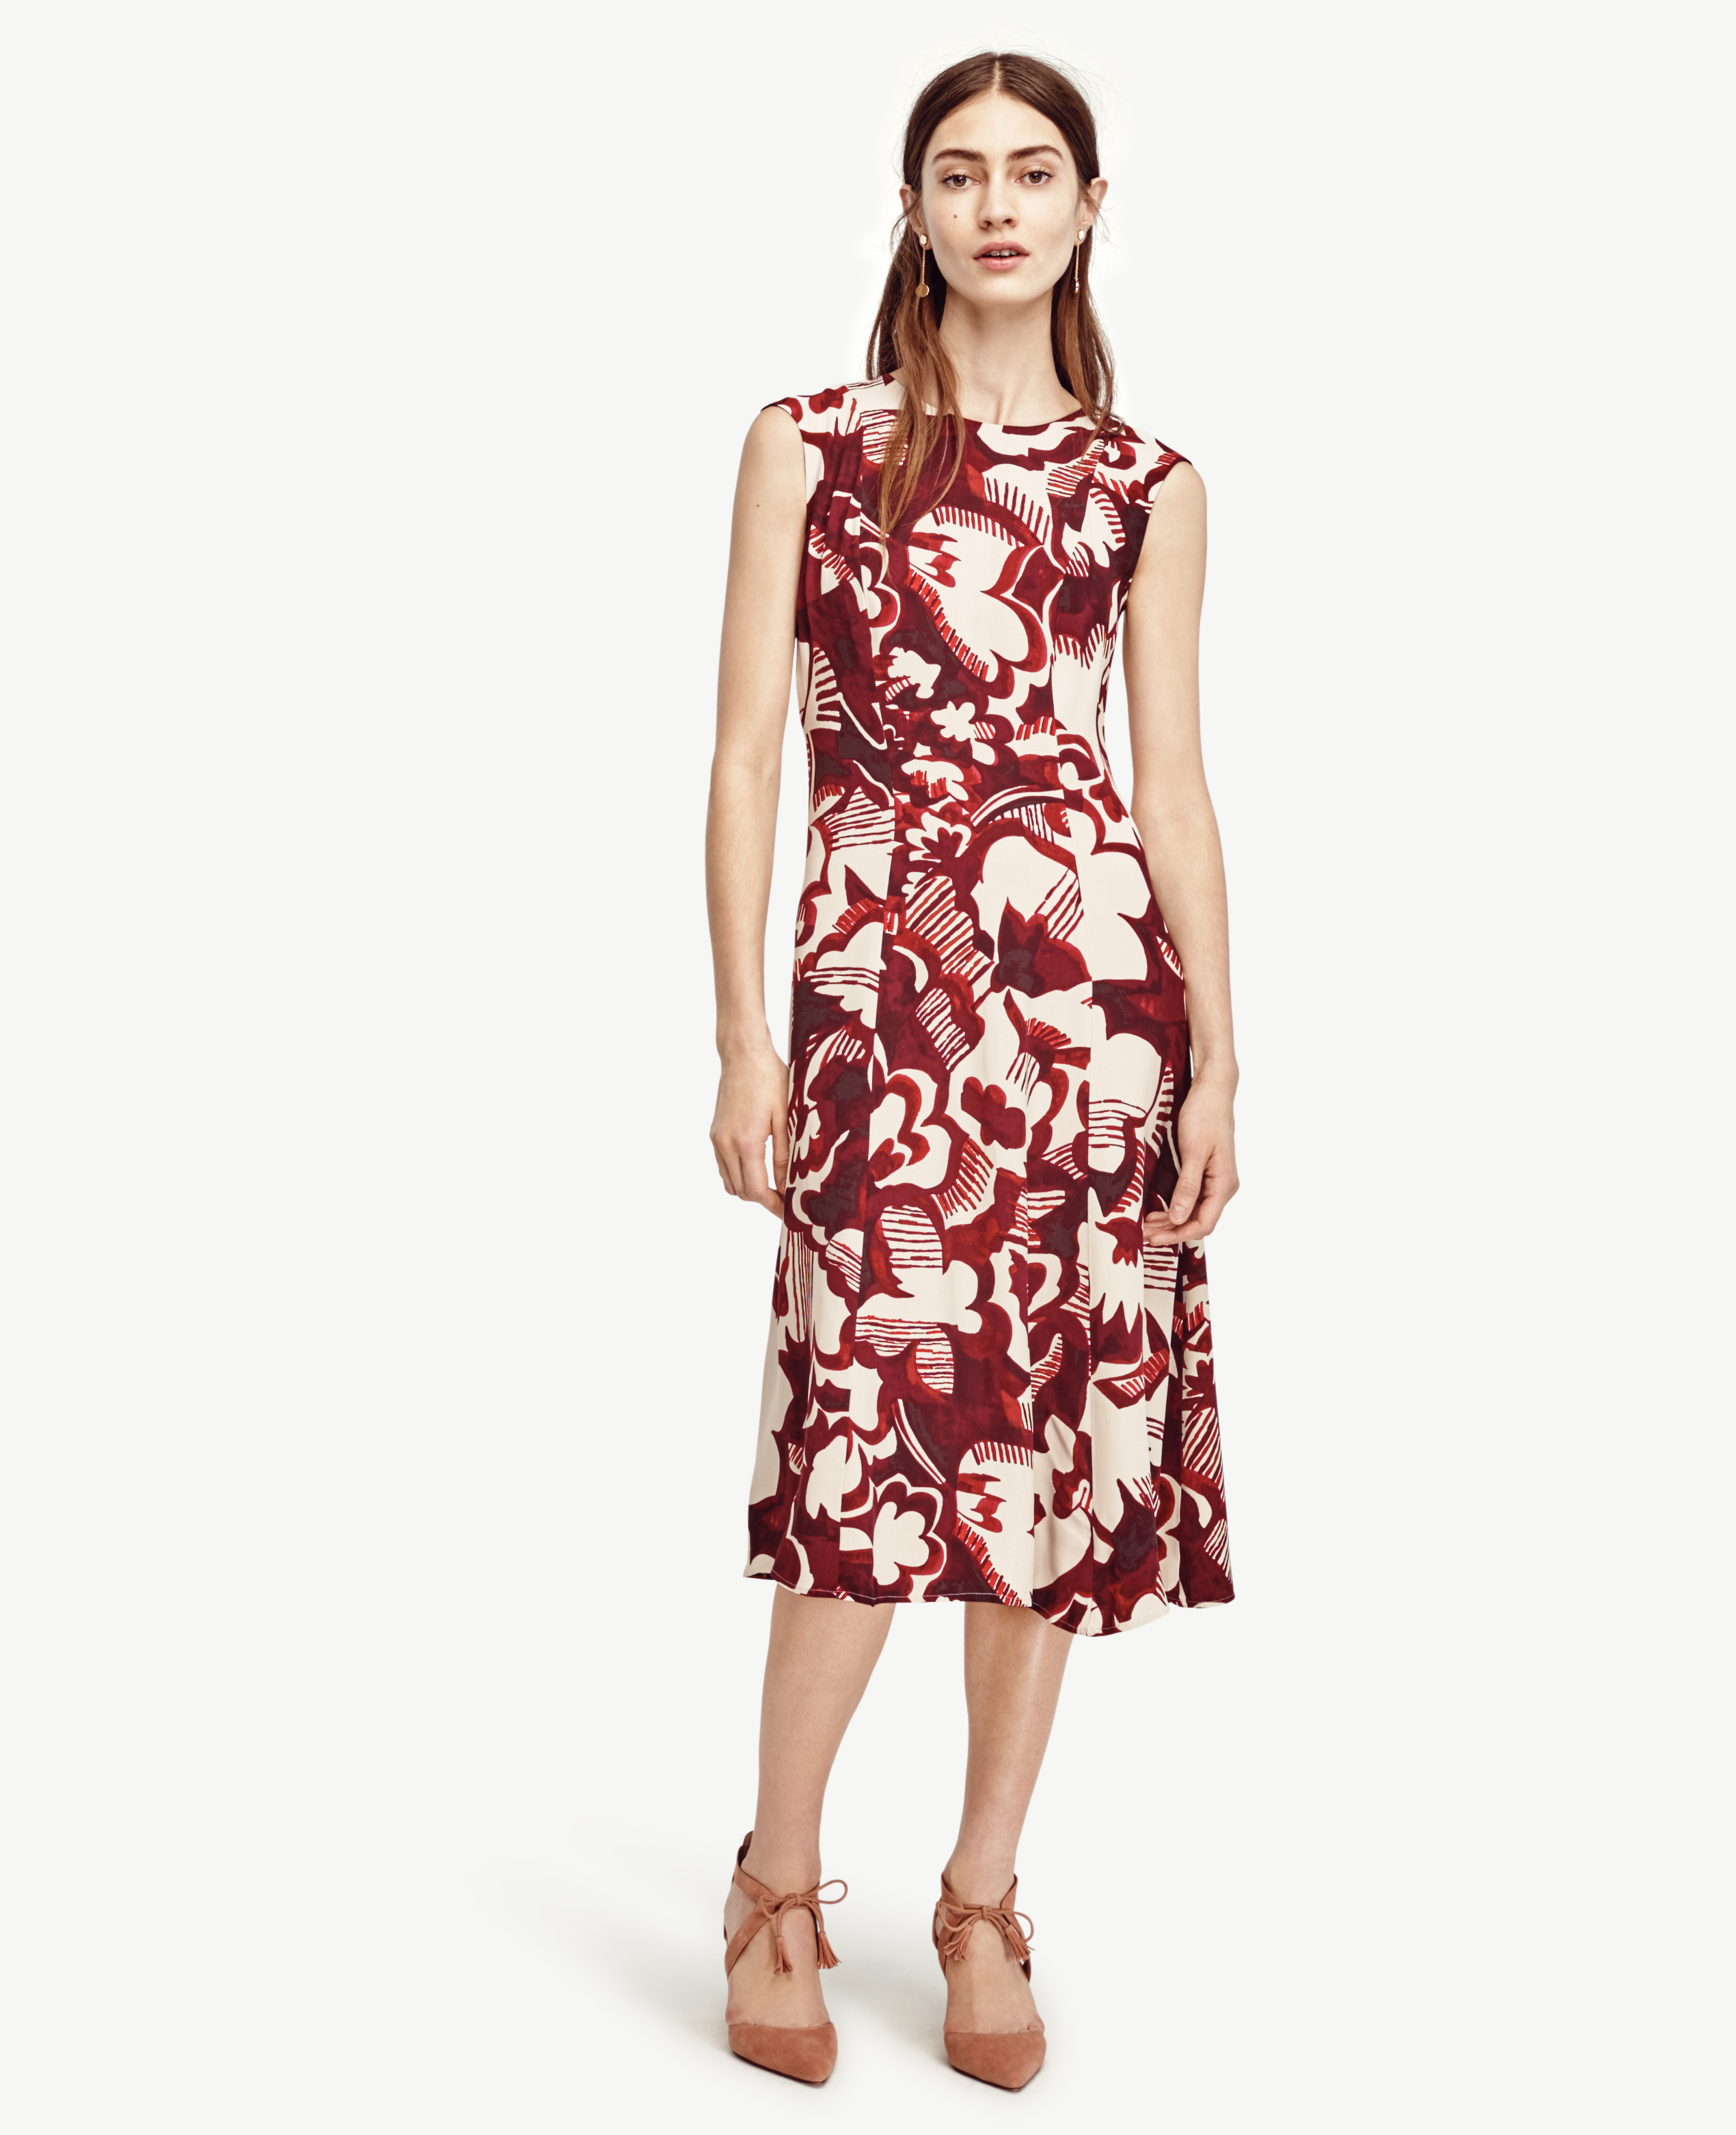 Lyst - Ann Taylor Watercolor Floral Midi Dress in Pink